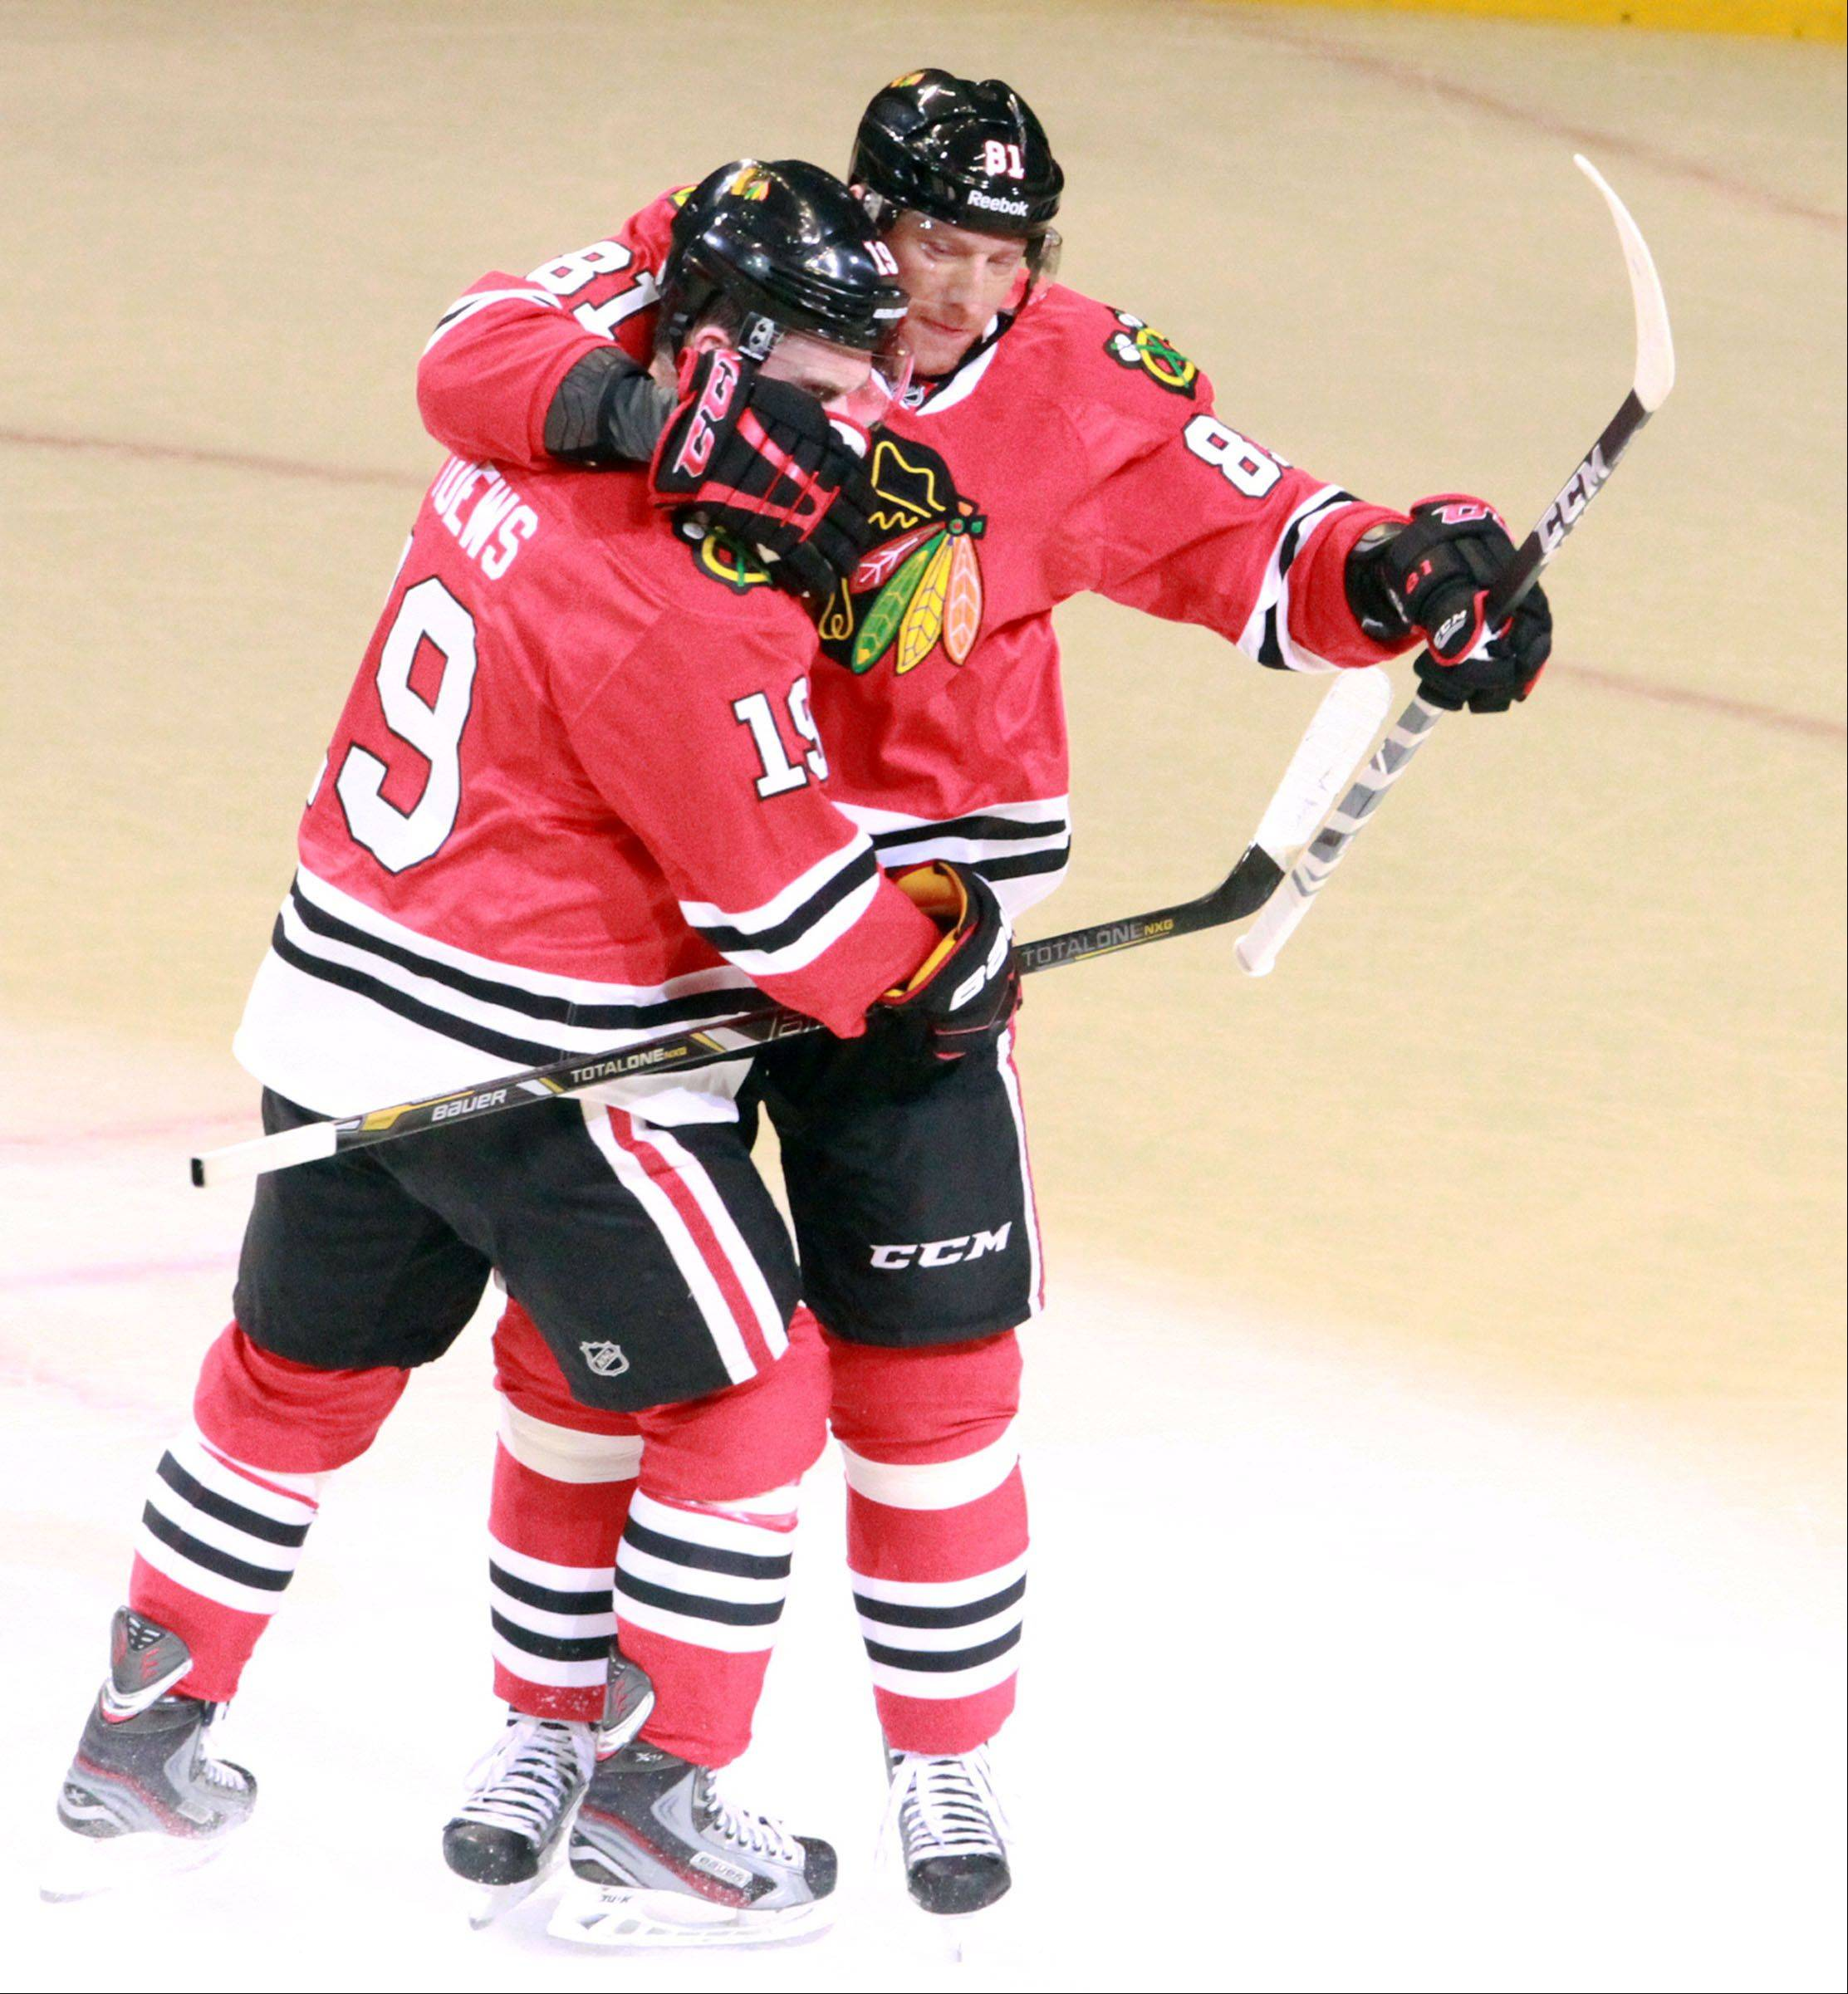 Blackhawks eliminate Wild with 5-1 win